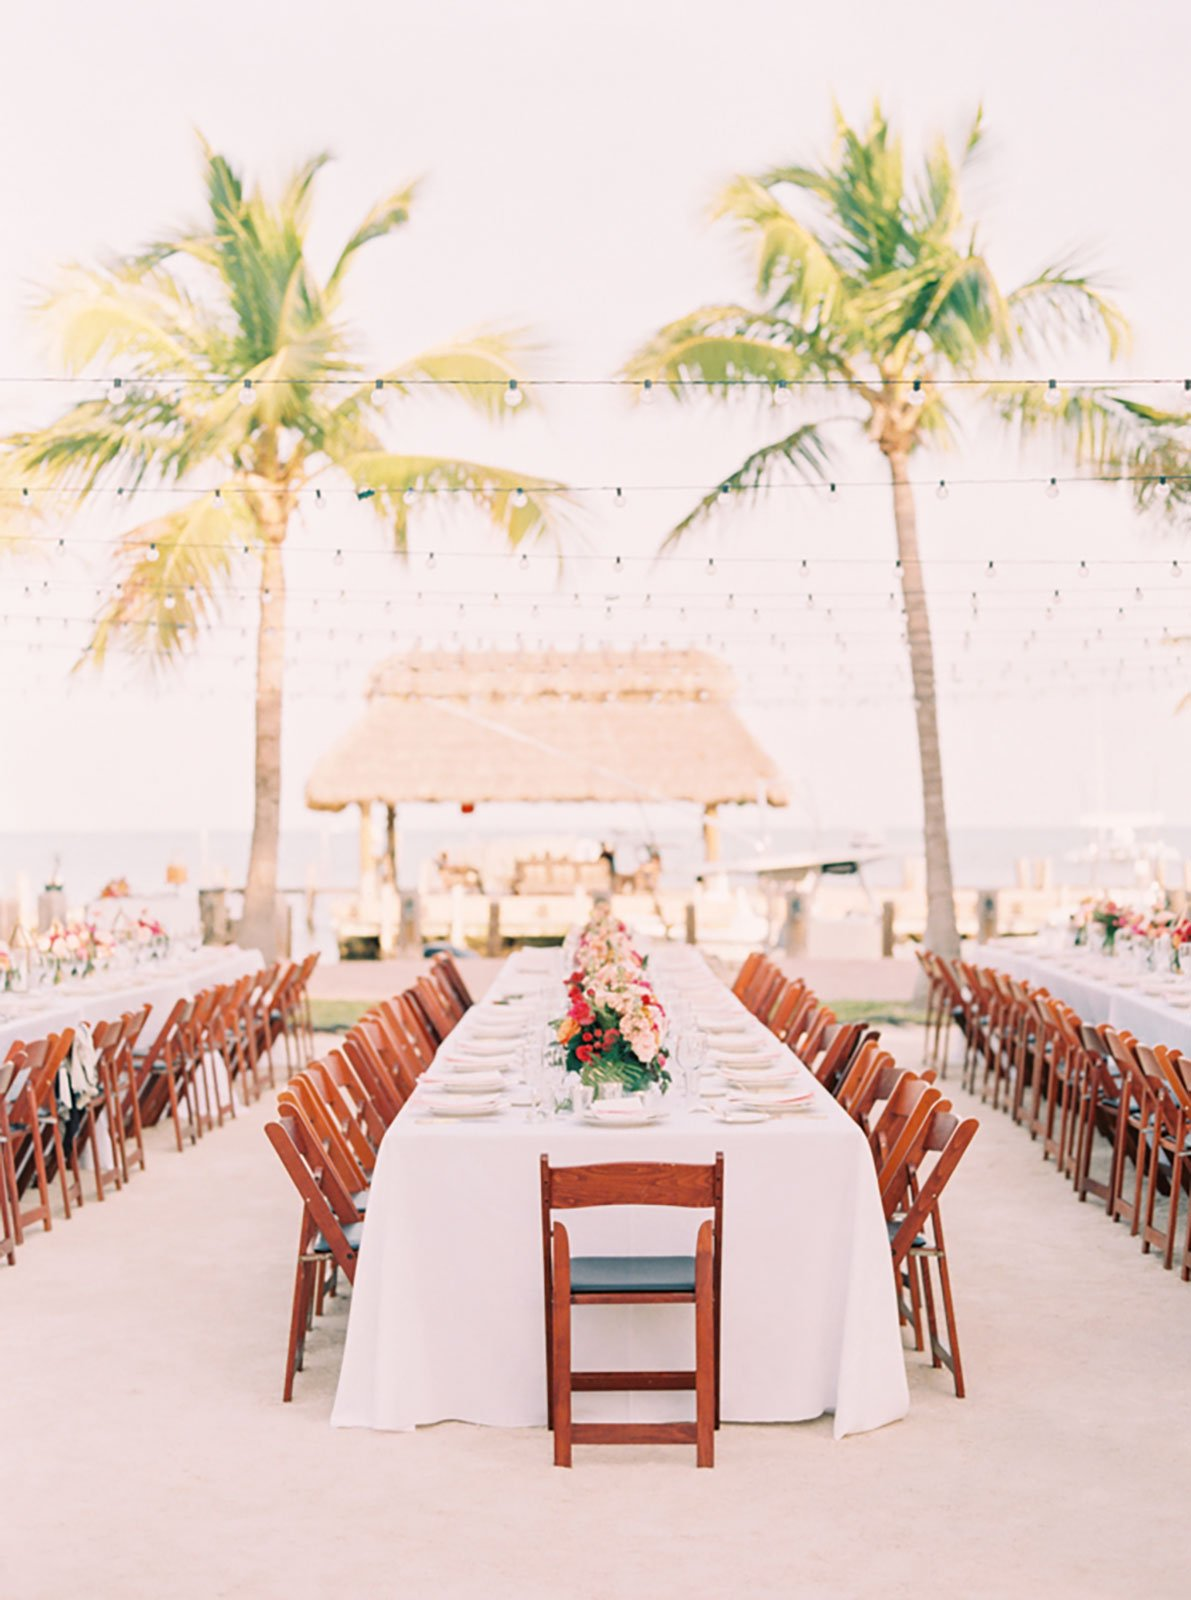 Intimate destination wedding reception | Islamorada